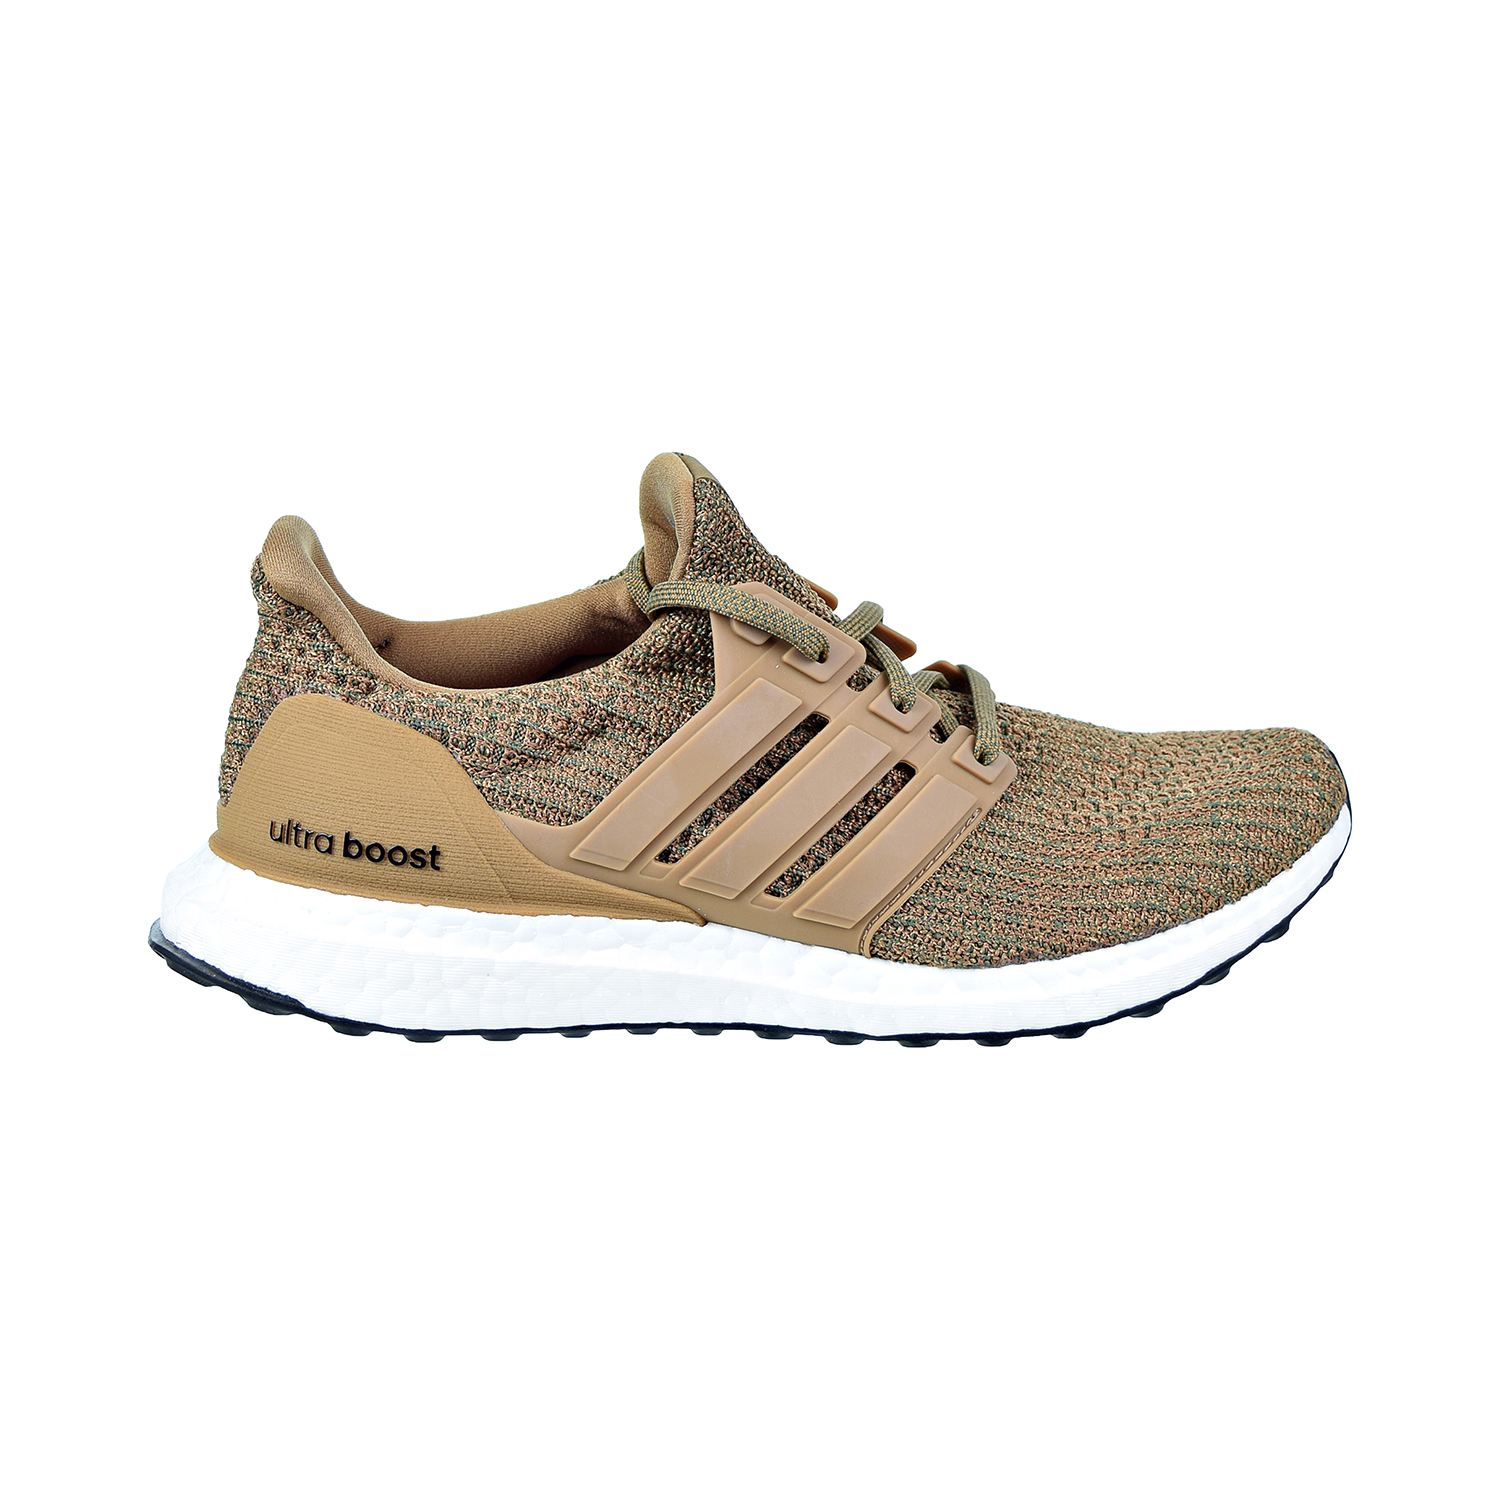 Details about Adidas Ultraboost Men's Running Shoes Raw DesertRaw DesertBase Green CM8118